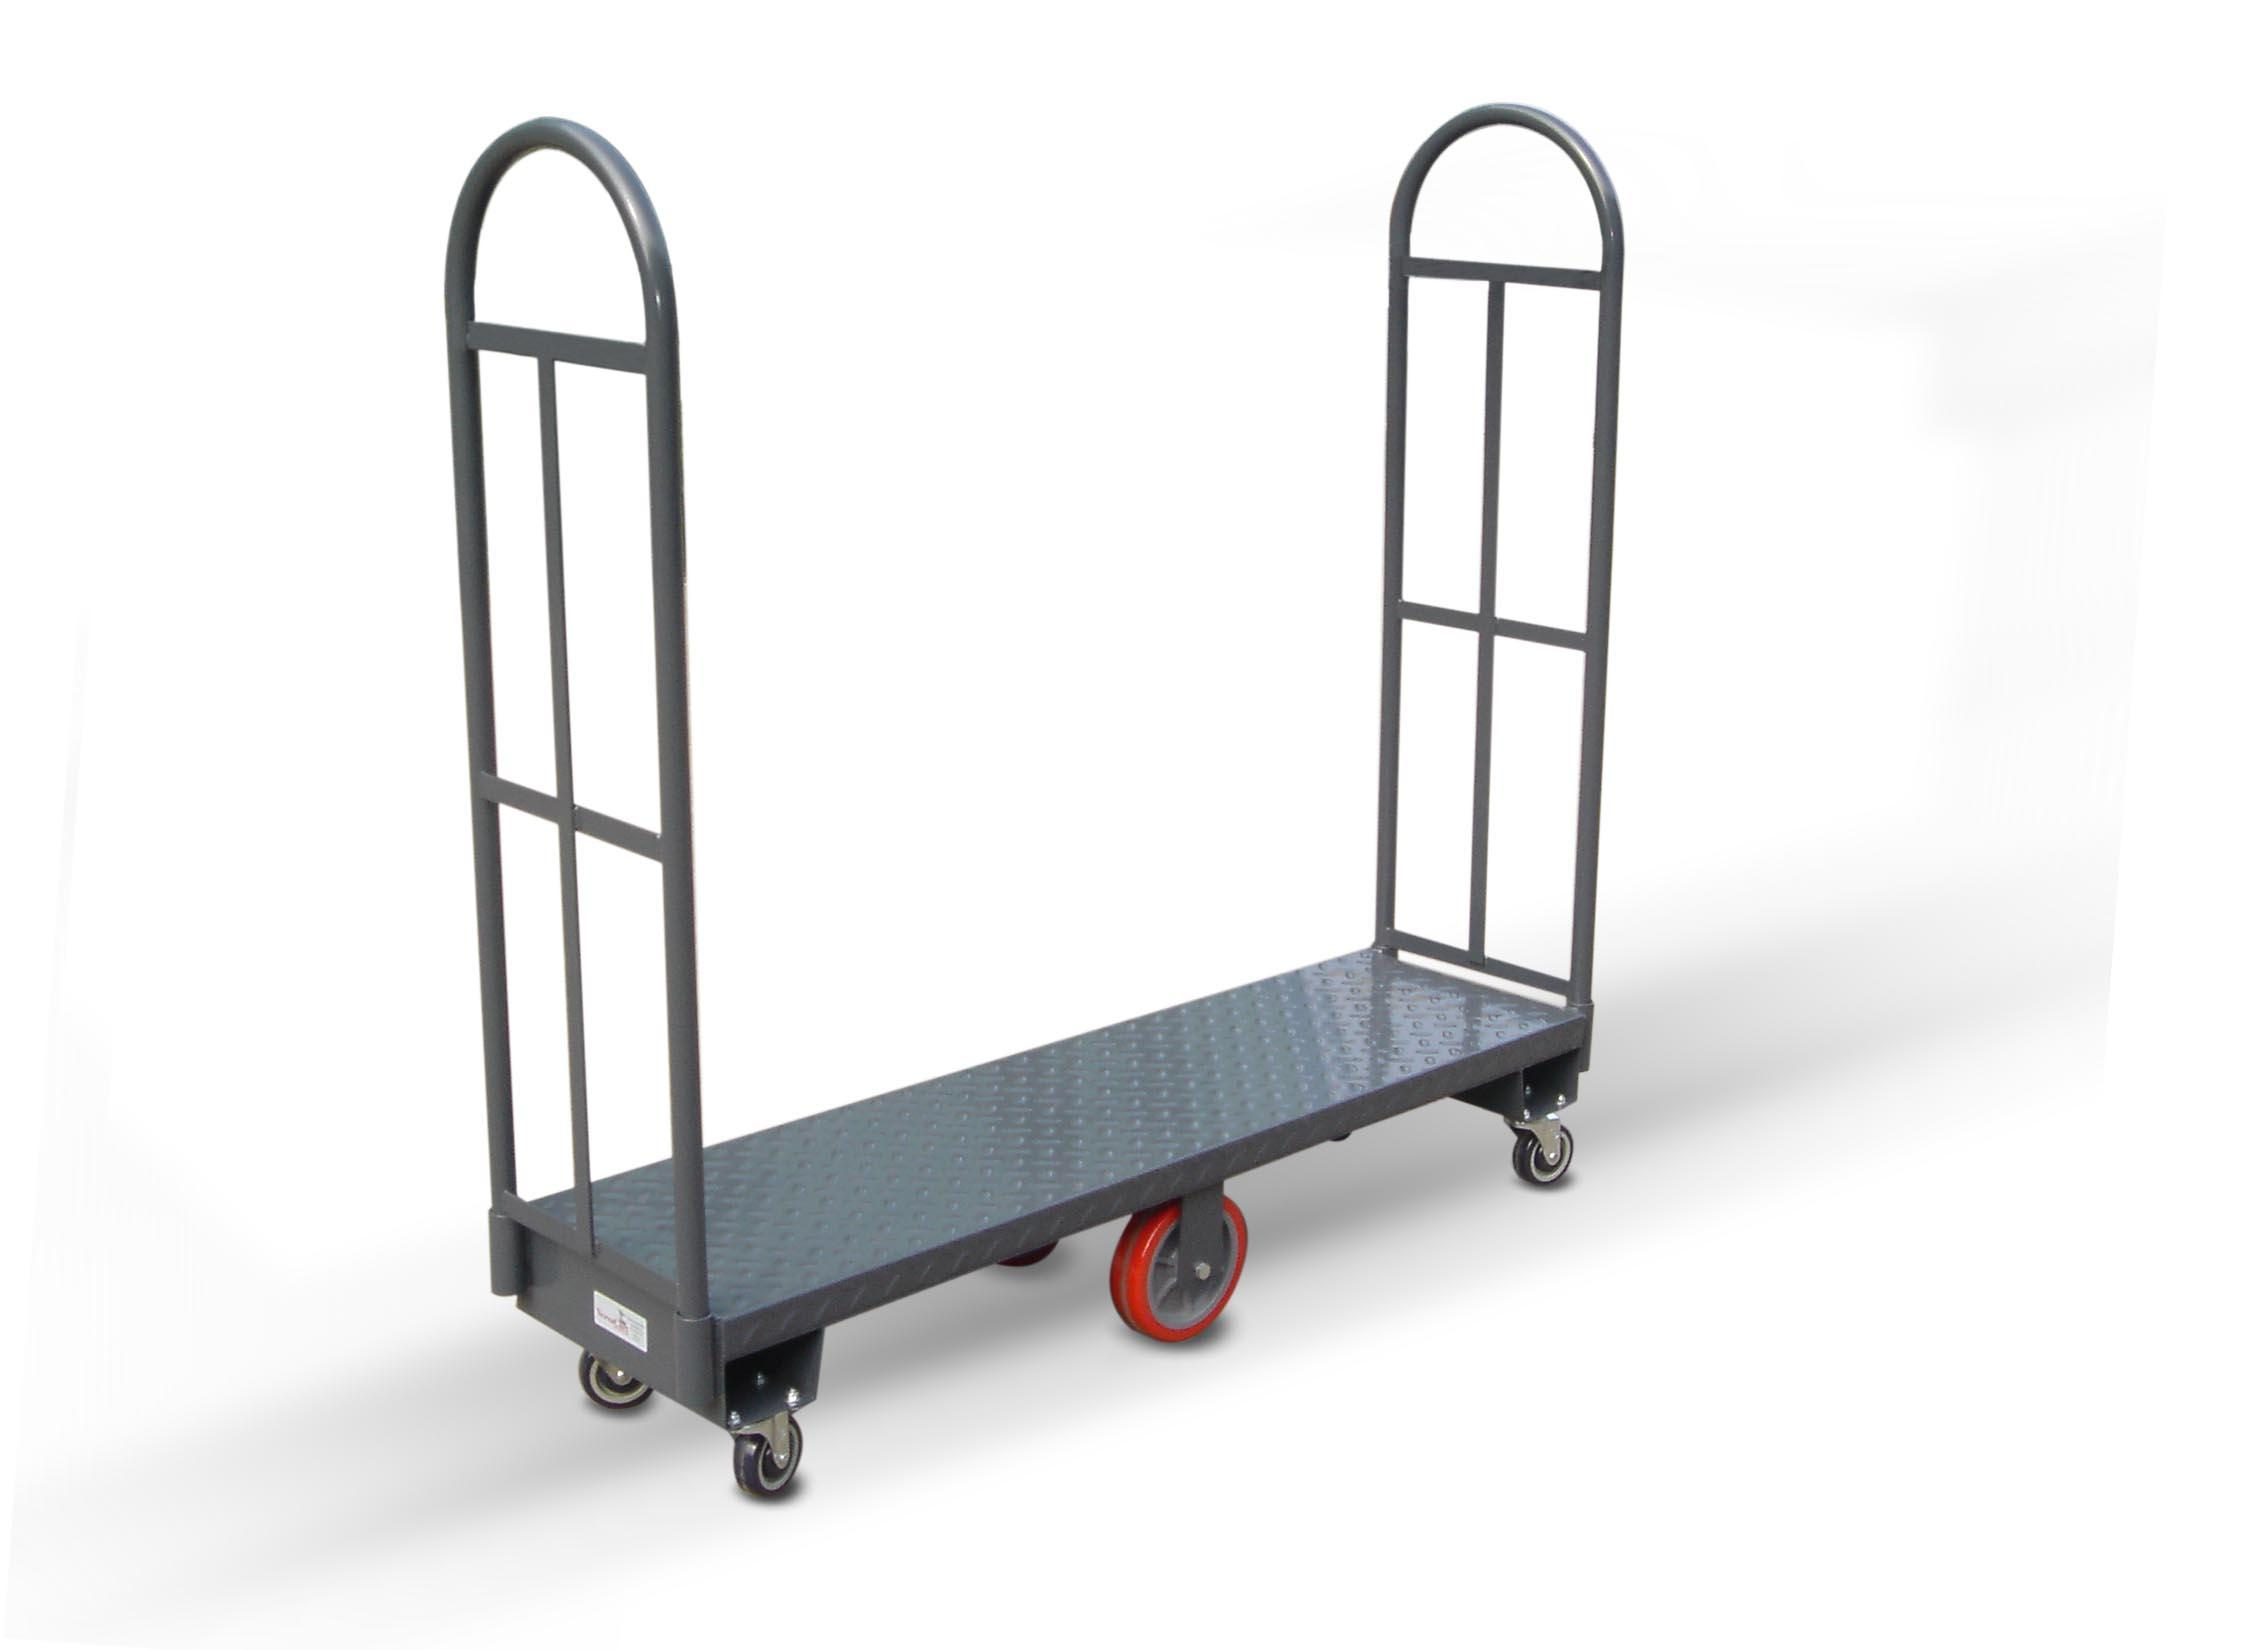 Image Result For Utility Carts On Wheels